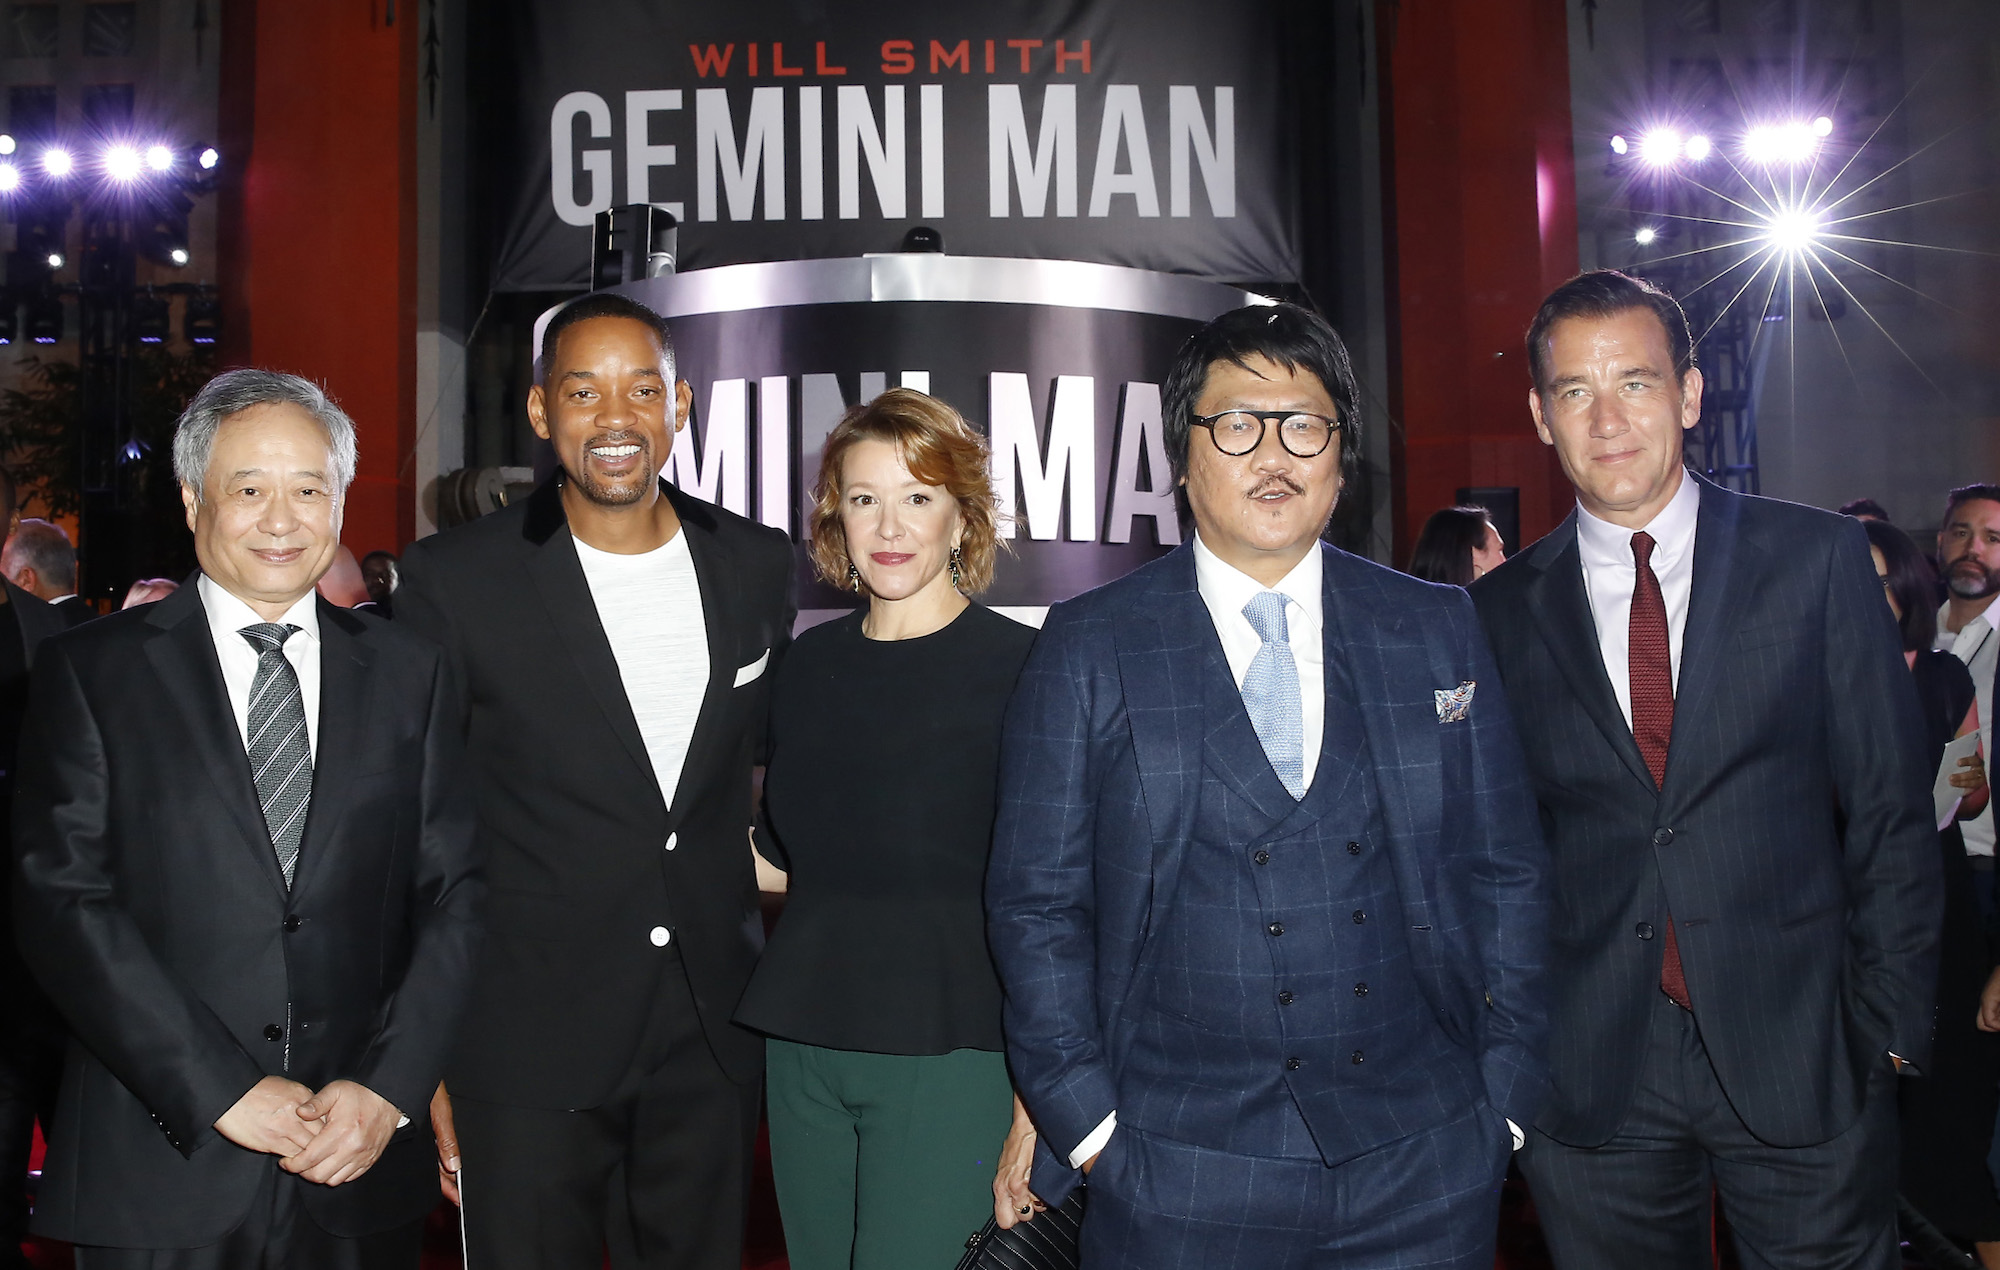 Will Smith at premiere of 'Gemini Man'